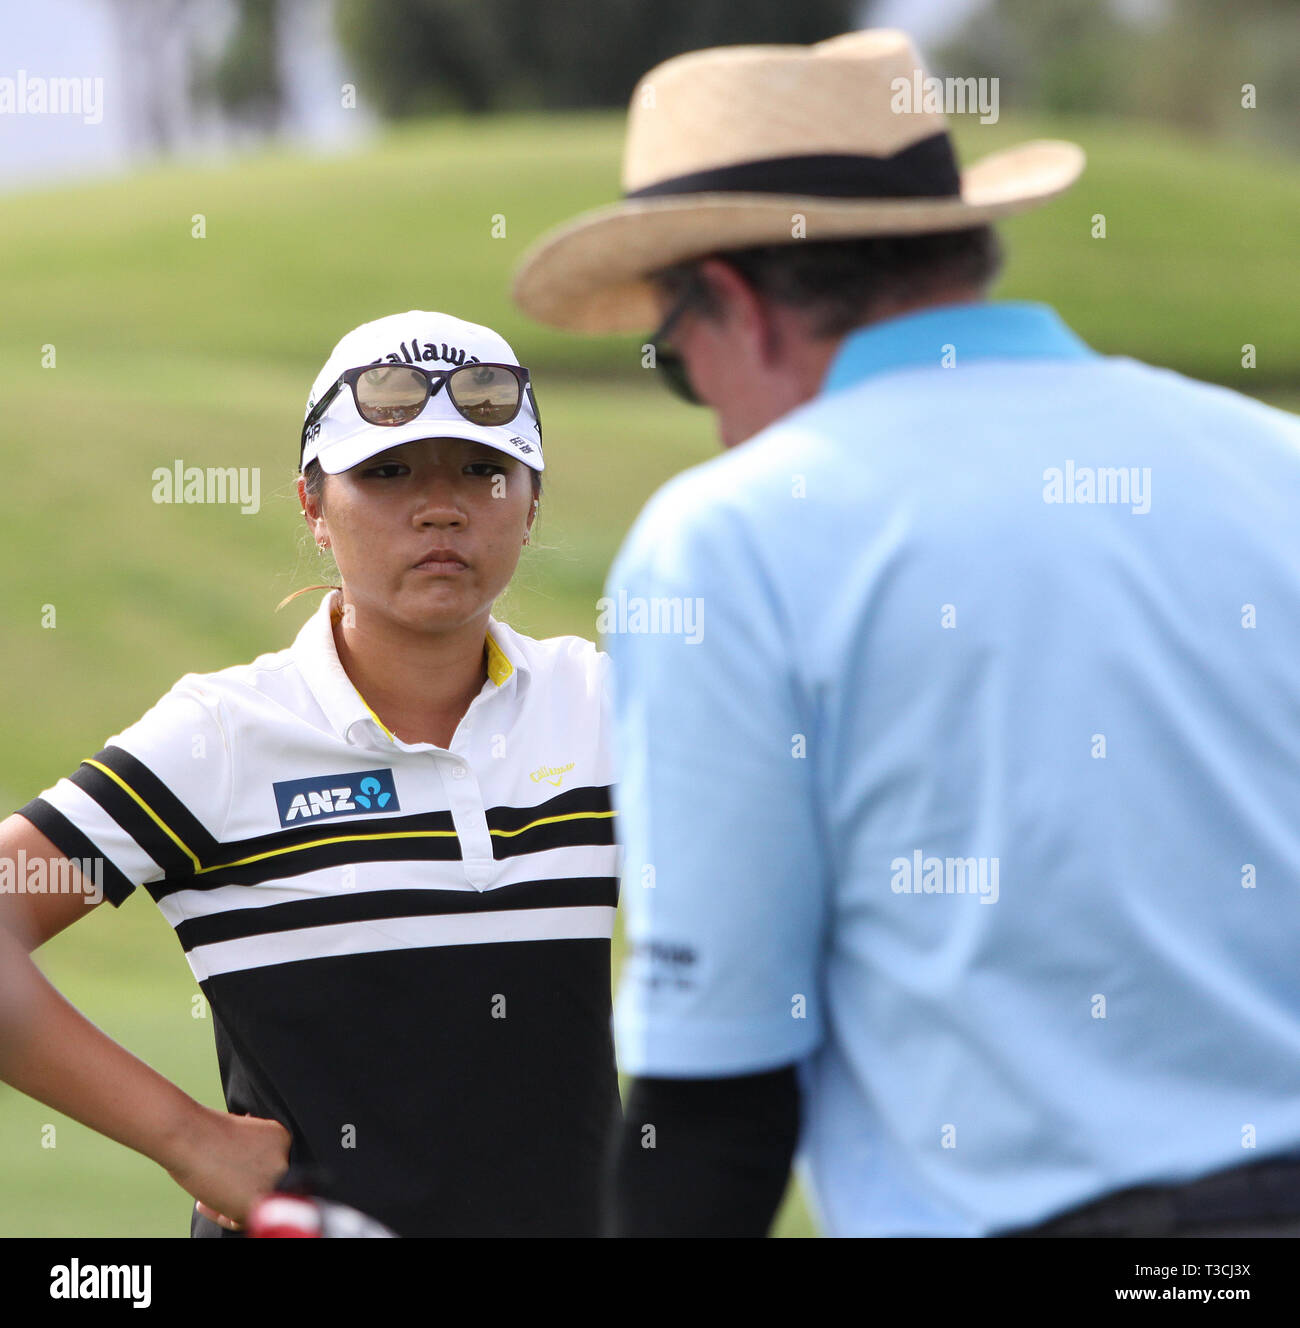 RANCHO MIRAGE, CALIFORNIA - MARCH 31, 2015 : David Leadbetter and